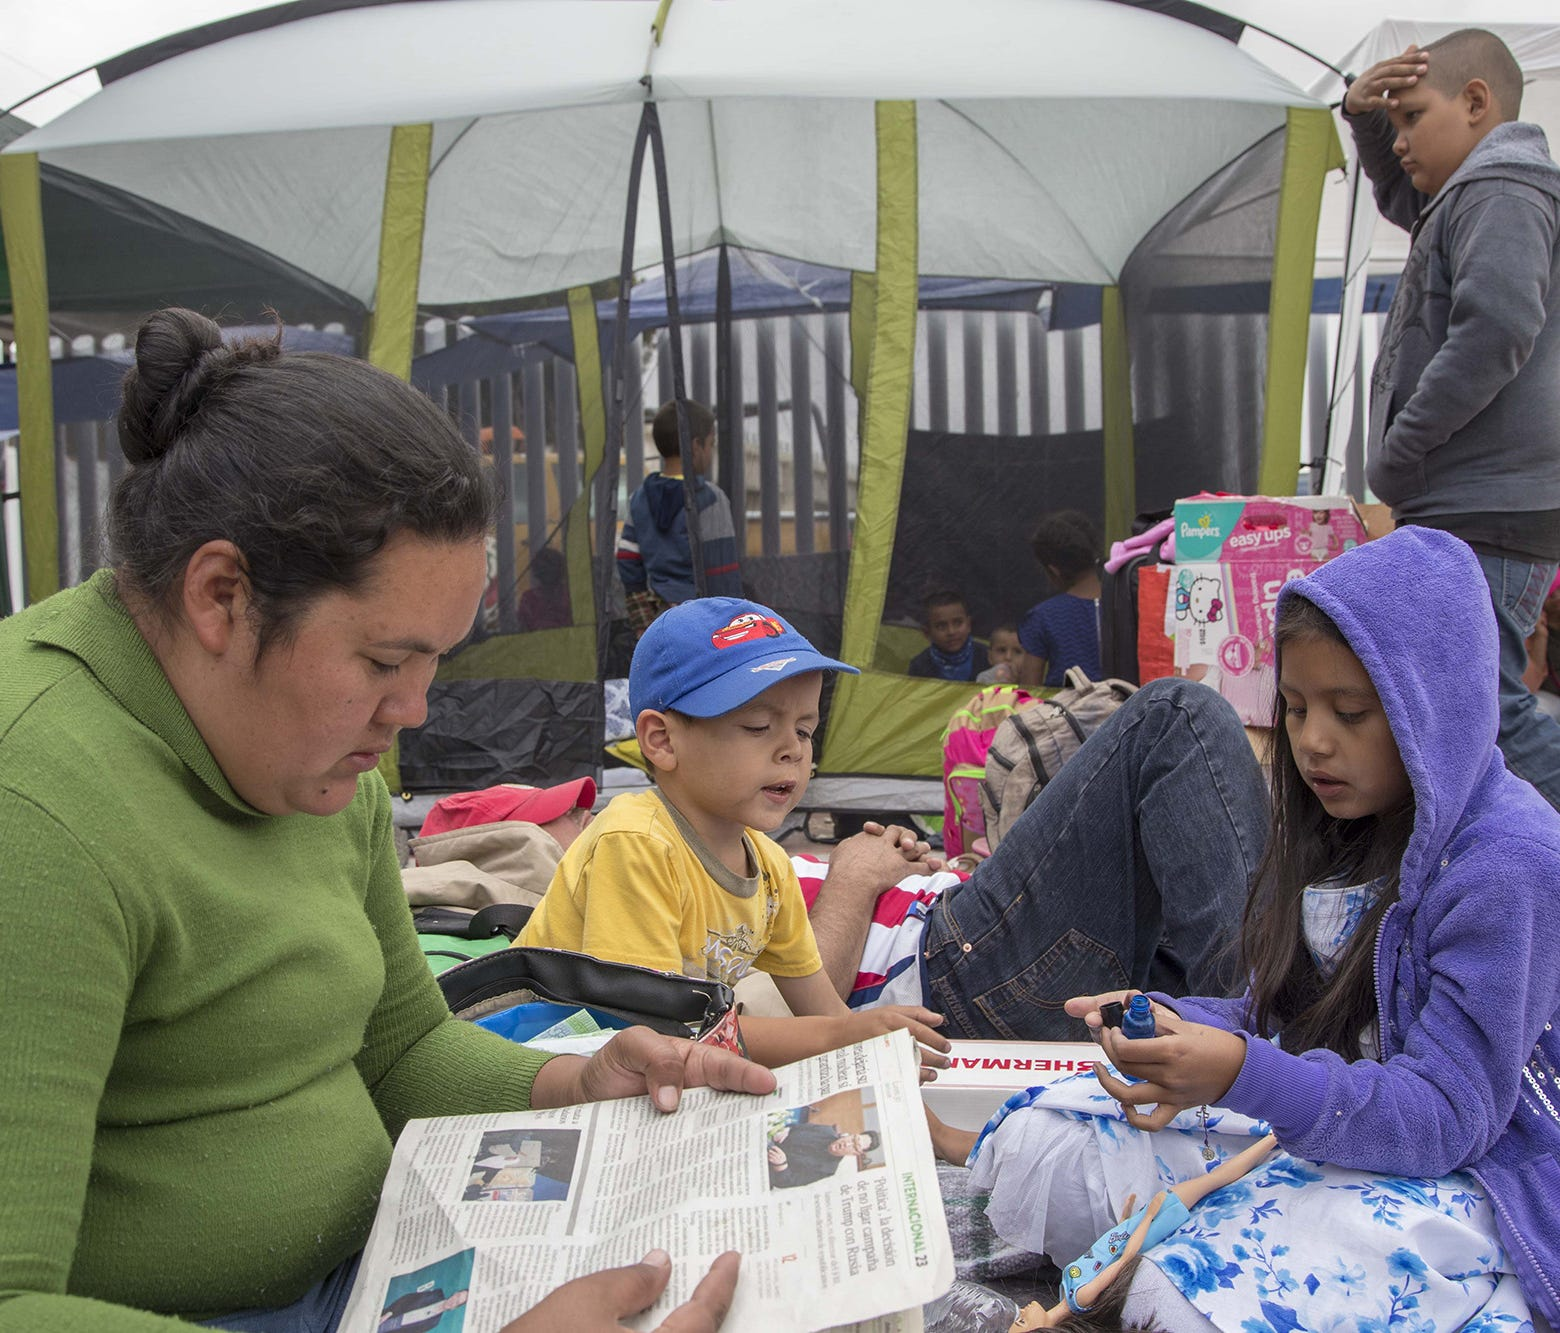 About 200 migrants from Central America who traveled in a caravan through Mexico were camped outside the entrance of the San Ysidro, Calif., port of entry, Monday, April 30, 2018, after being turned away Sunday, April 29, 2018, by U.S. Customs and Bo